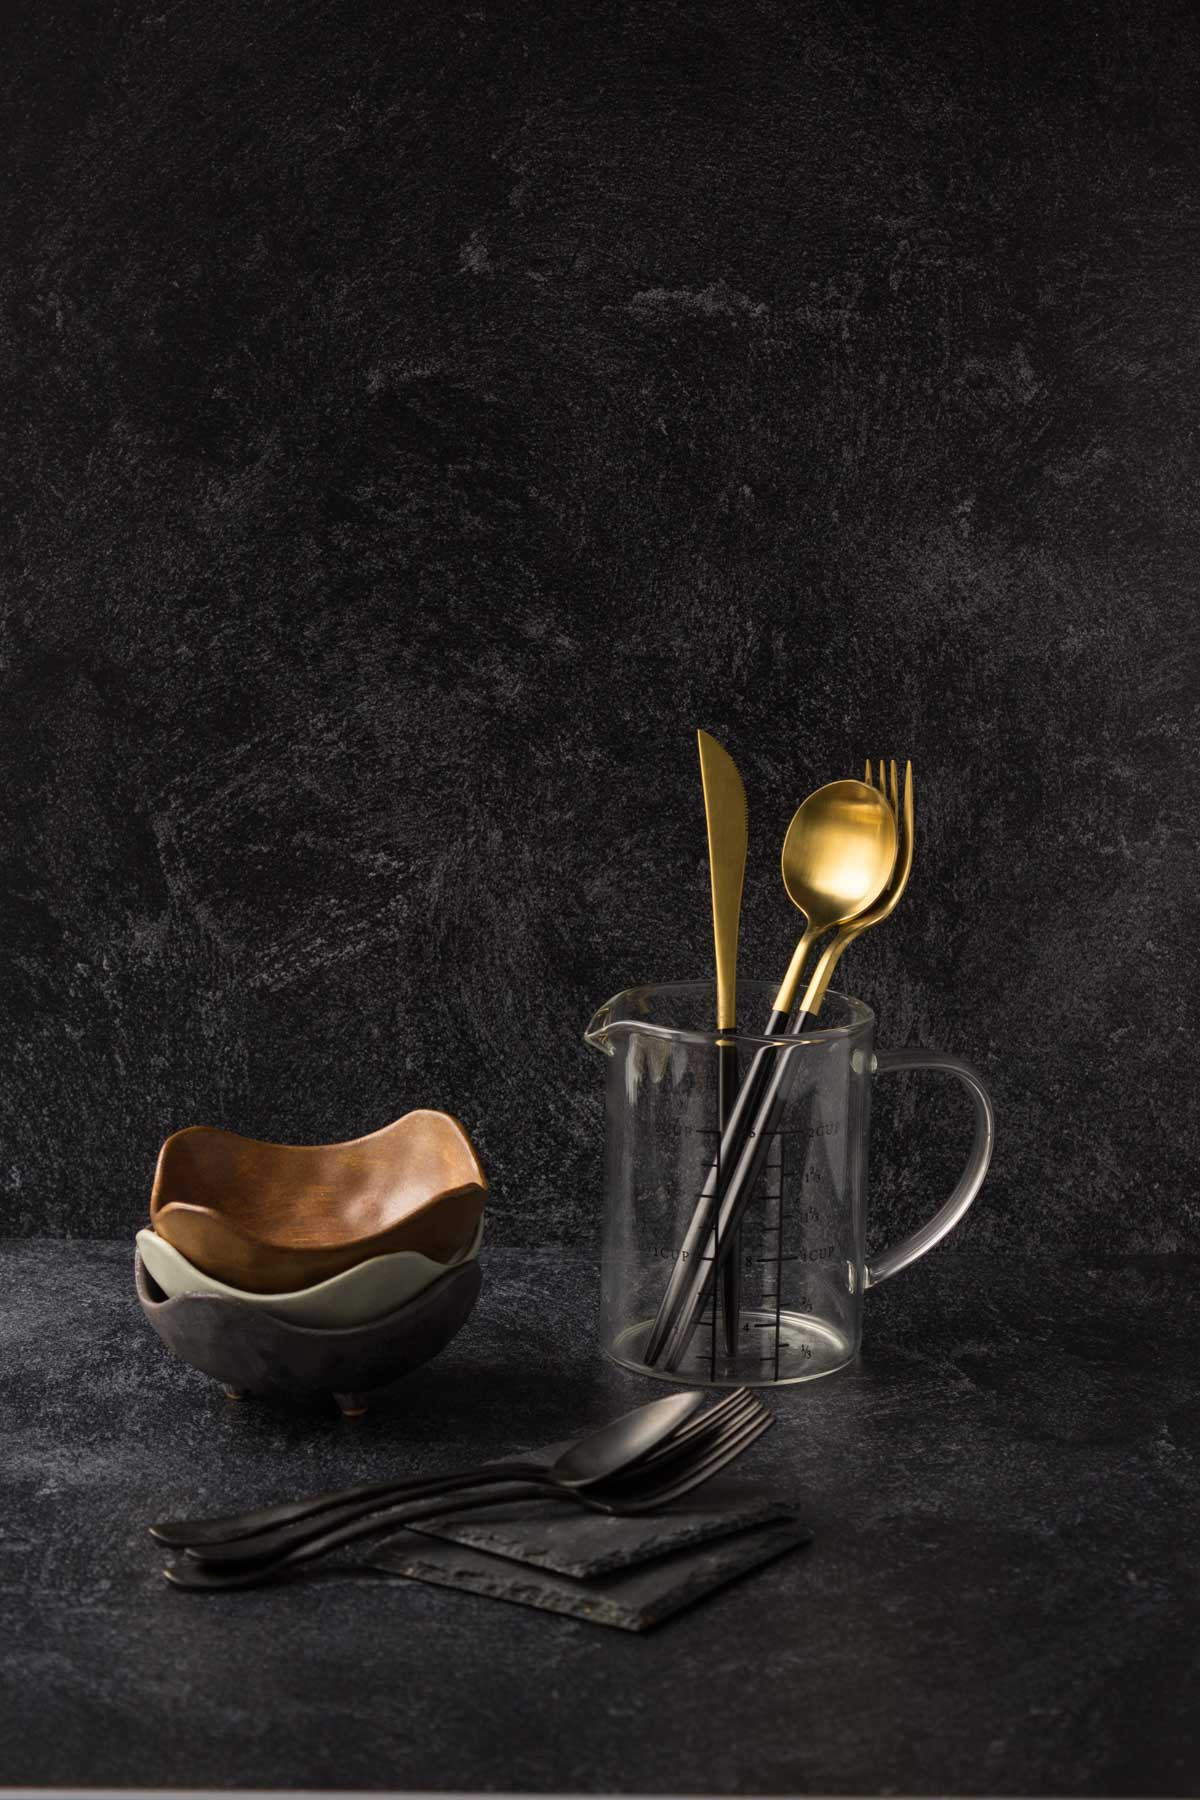 Gold and black spoons in a glass